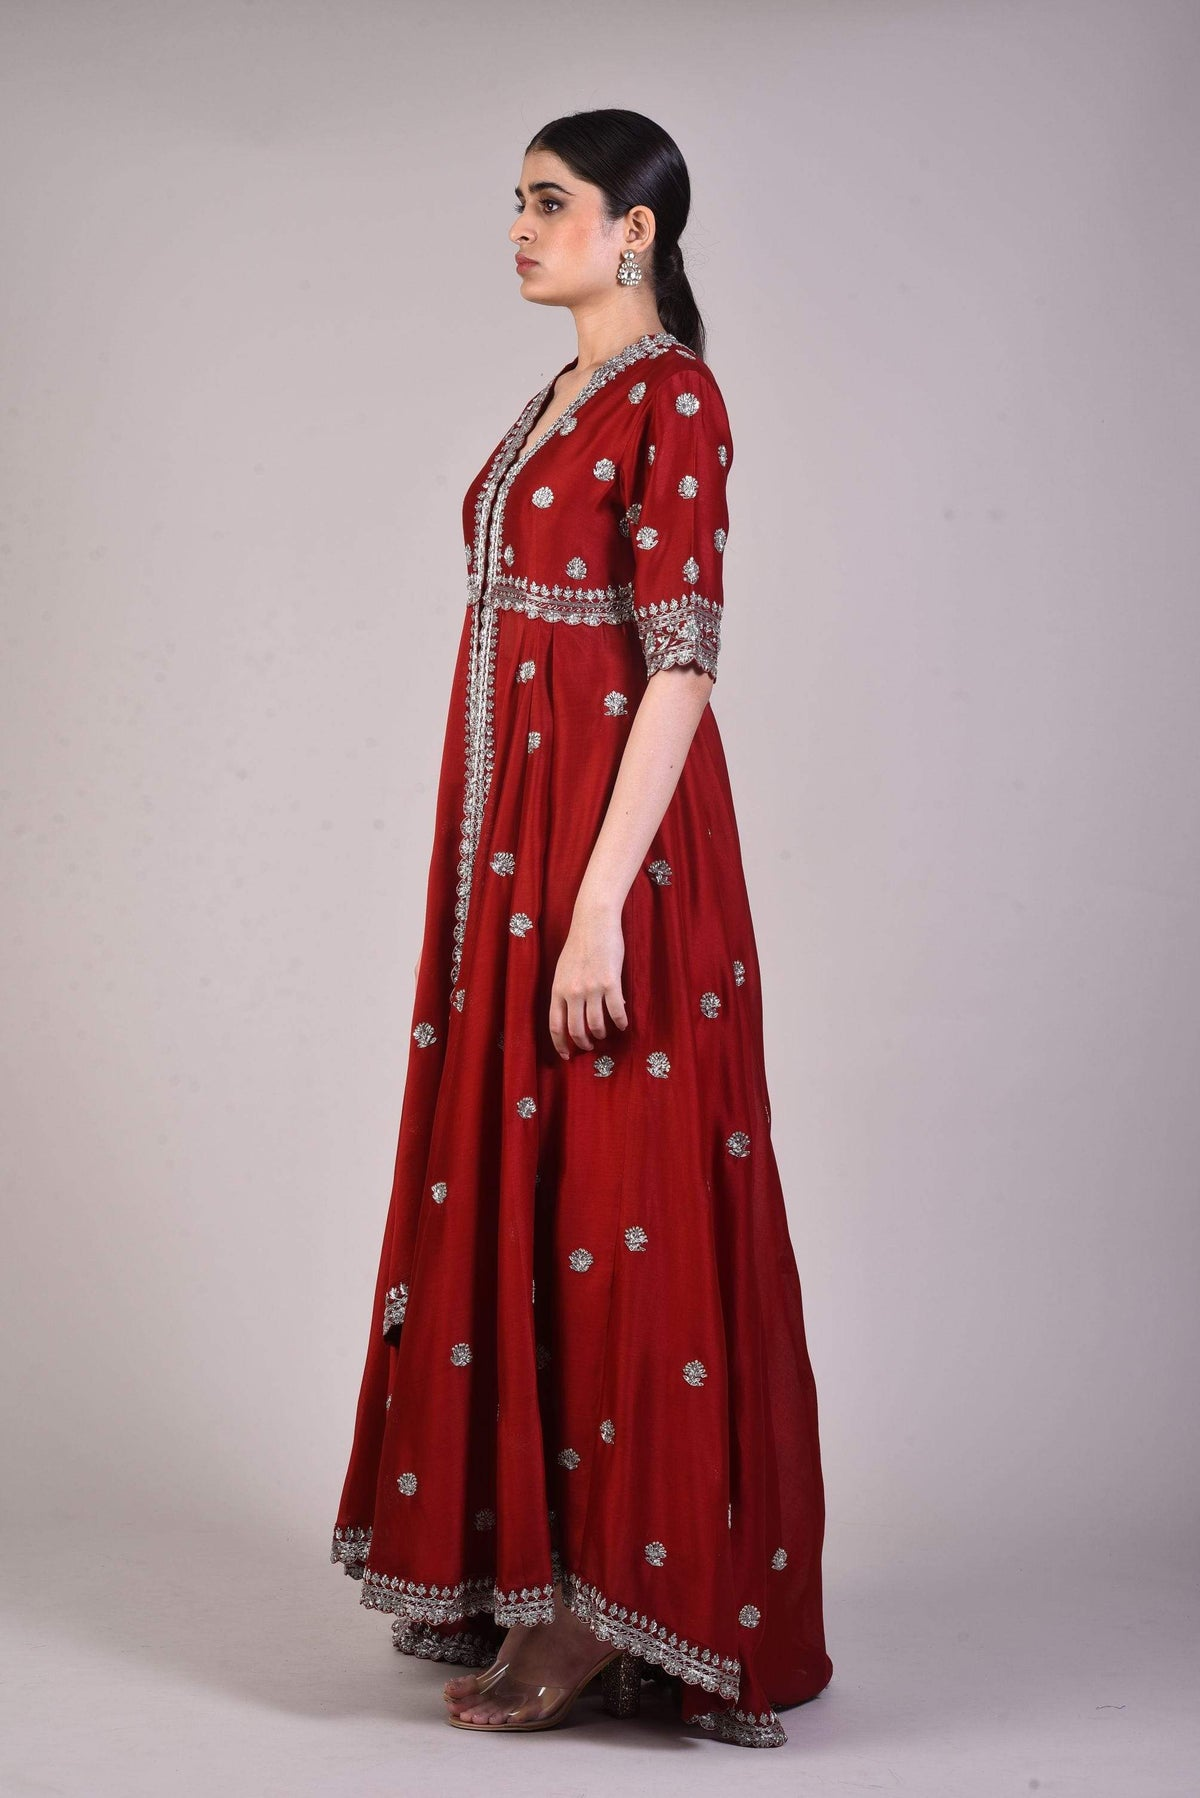 Jayanti Reddy Tunics Maroon silk embroidered tunic